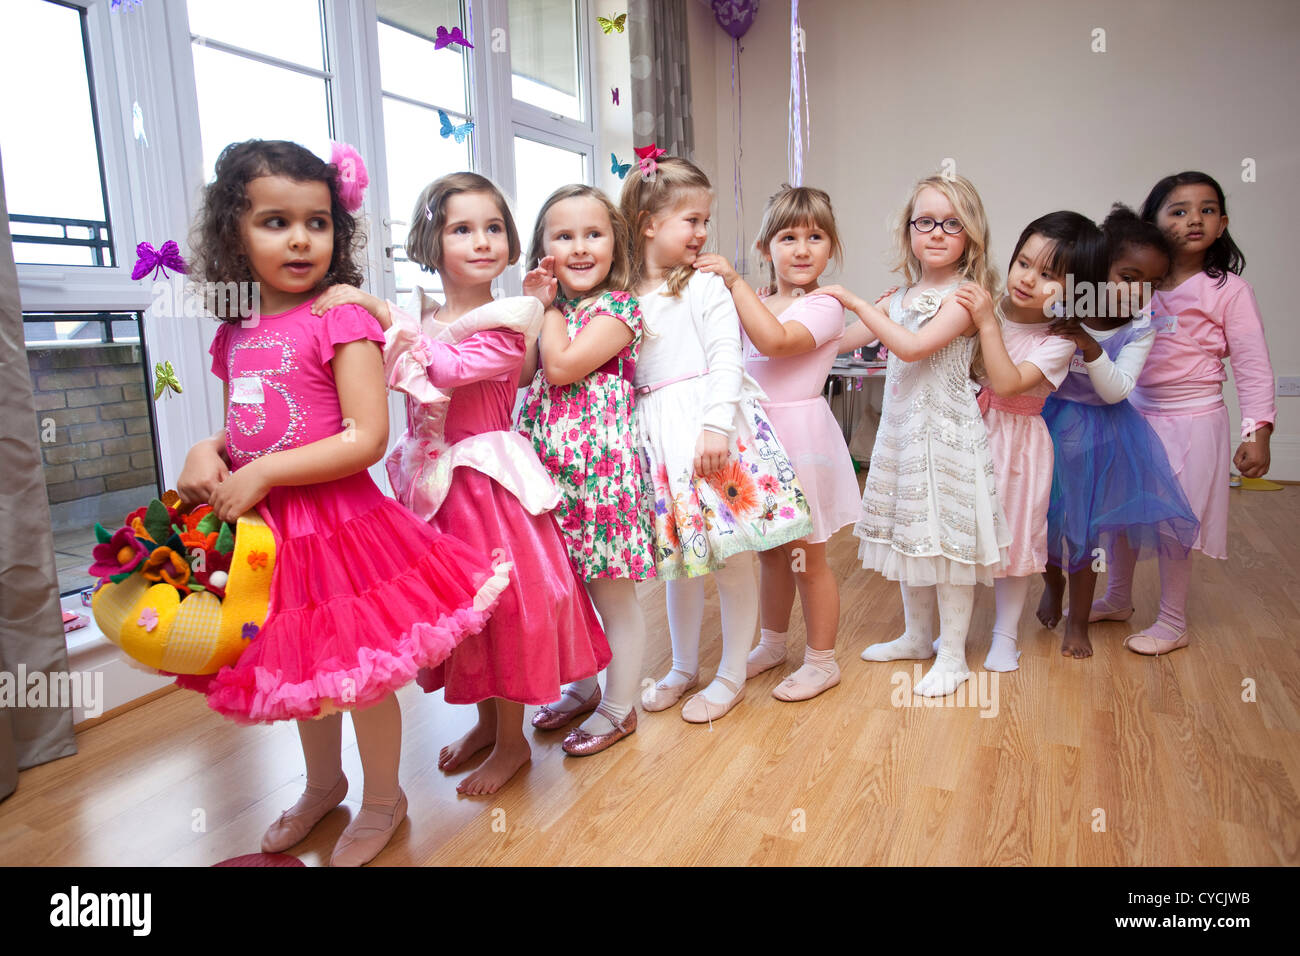 5 Year Old Girls Birthday Party All Dressed As In Clothes